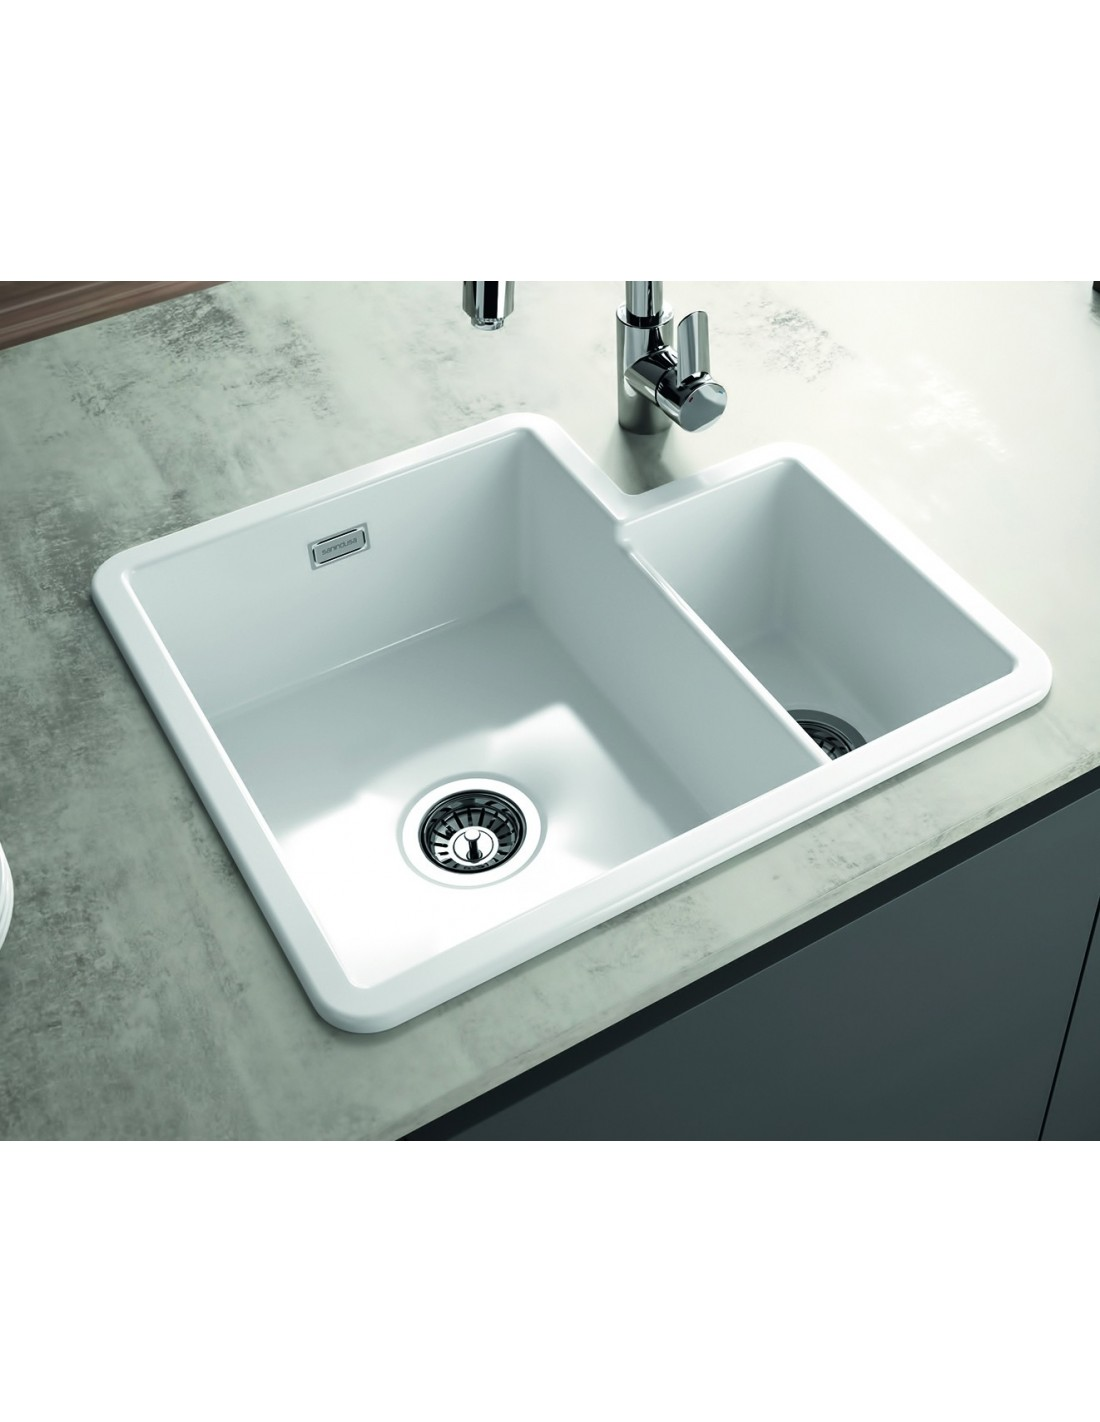 Inset or topmount fitted kitchen sinks 1 5 bowl kitchen - Undermount ceramic kitchen sink ...